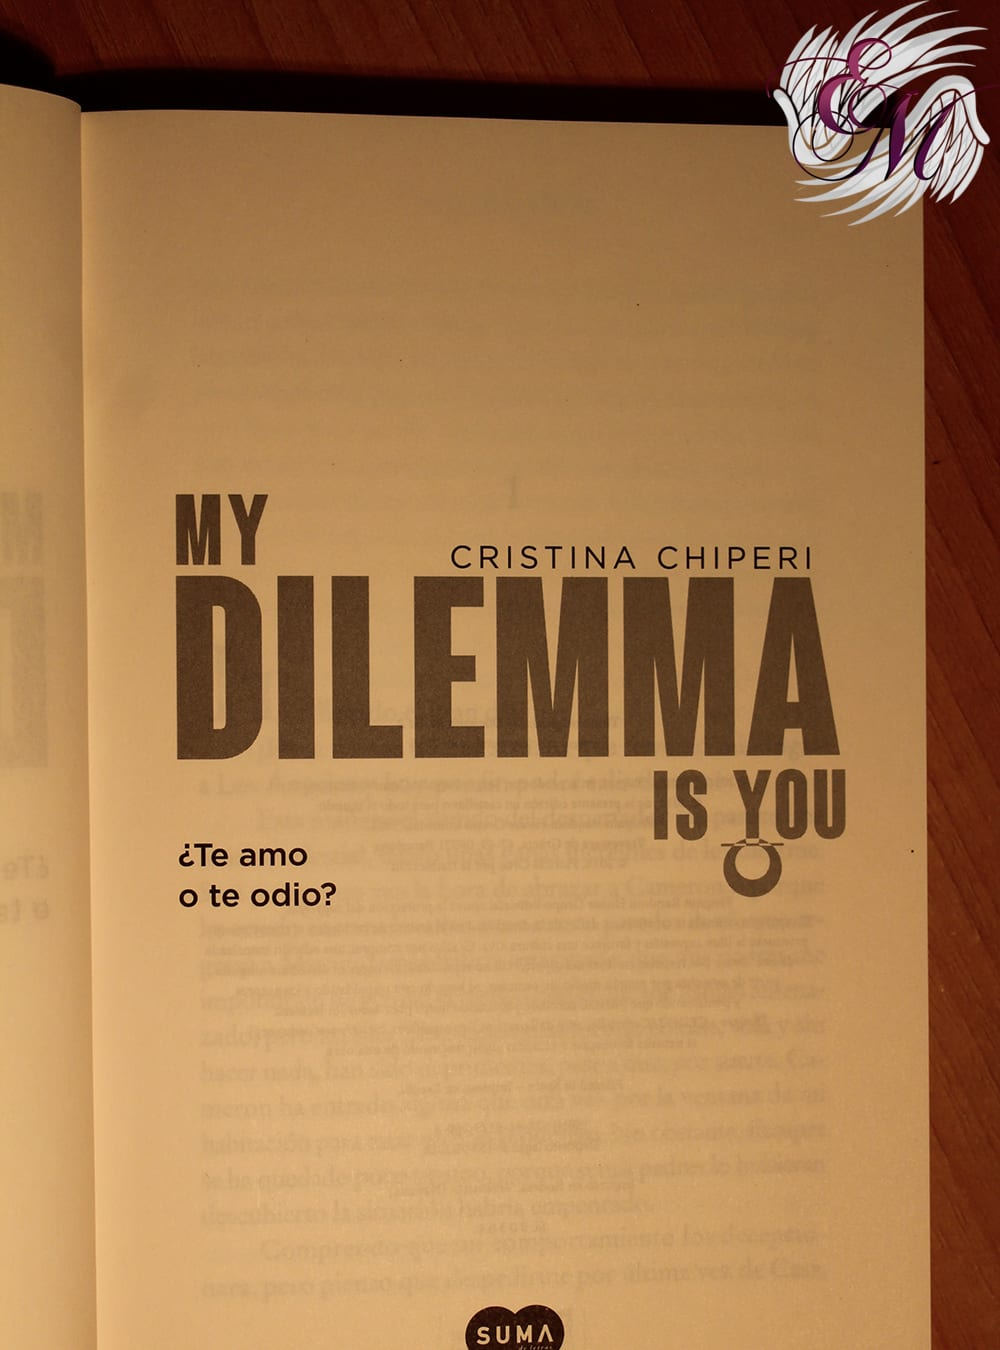 My Dilemma Is You #2: ¿Te amo o te odio?, de Cristina Chiperi – Reseña